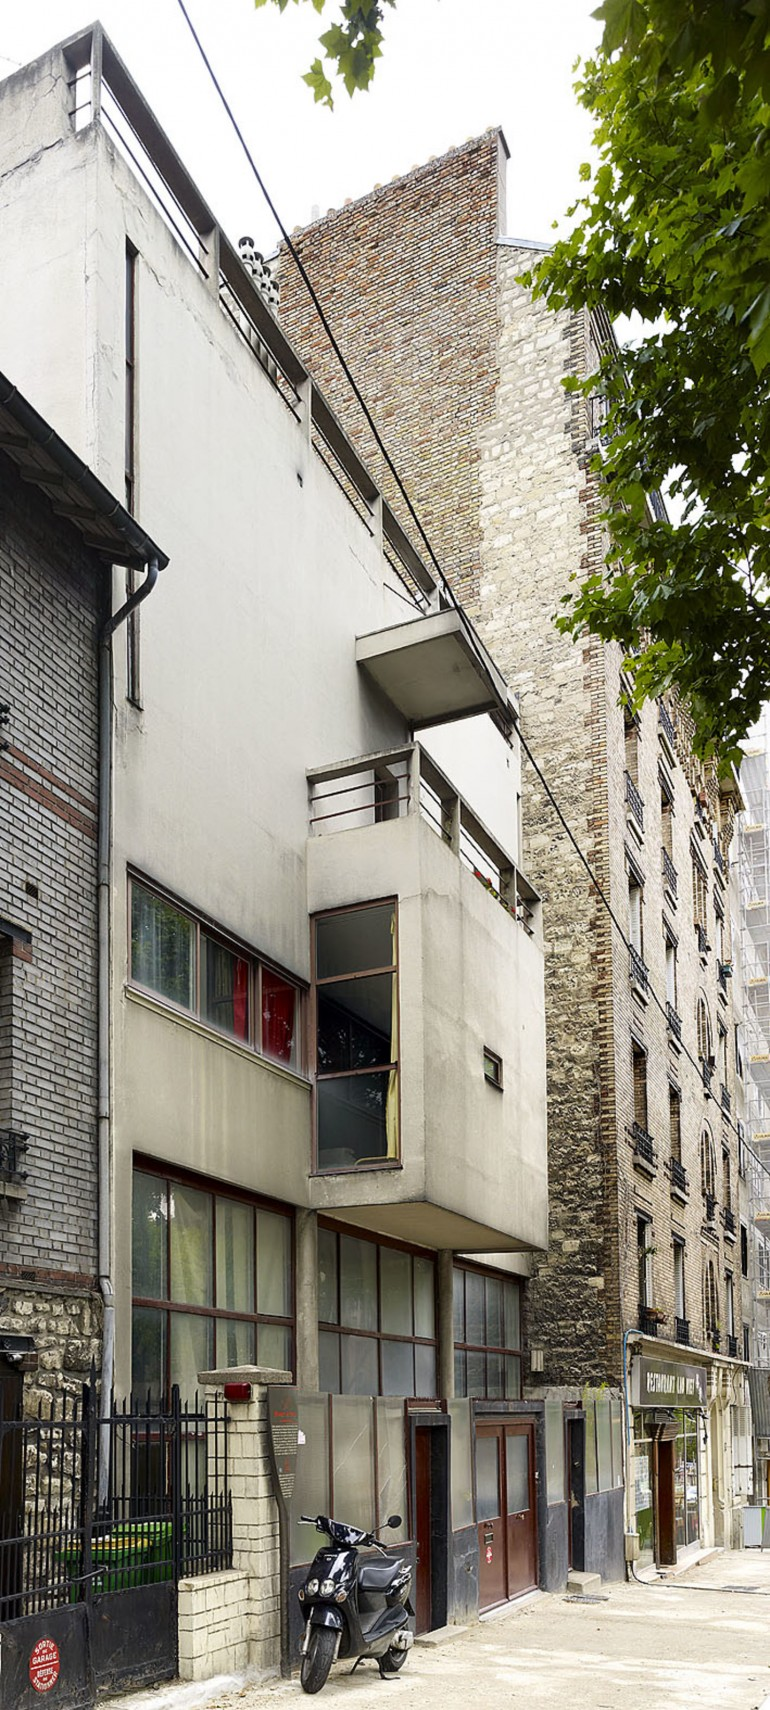 Maison Planeix, Paris, France, 1924